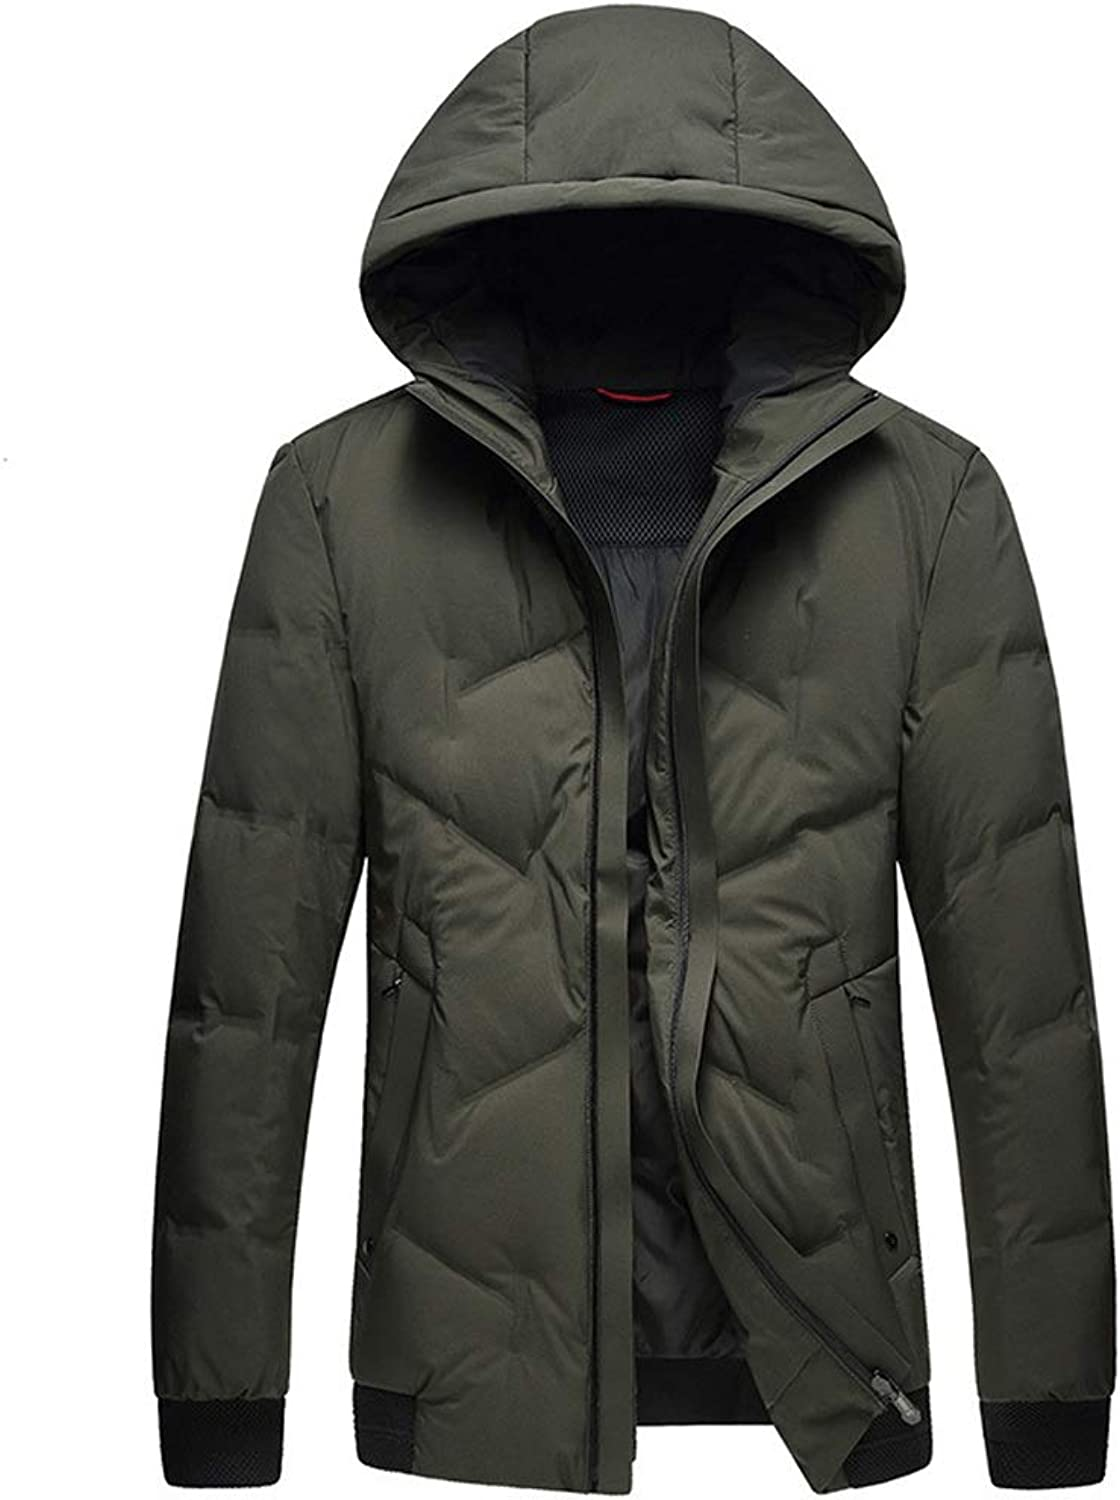 New Down Jacket, Men's Casual Short Thick Hooded Jacket, Winter Outdoor Cold Warm Jacket, Suitable for Cold Weather (color   Green, Size   XXXL)